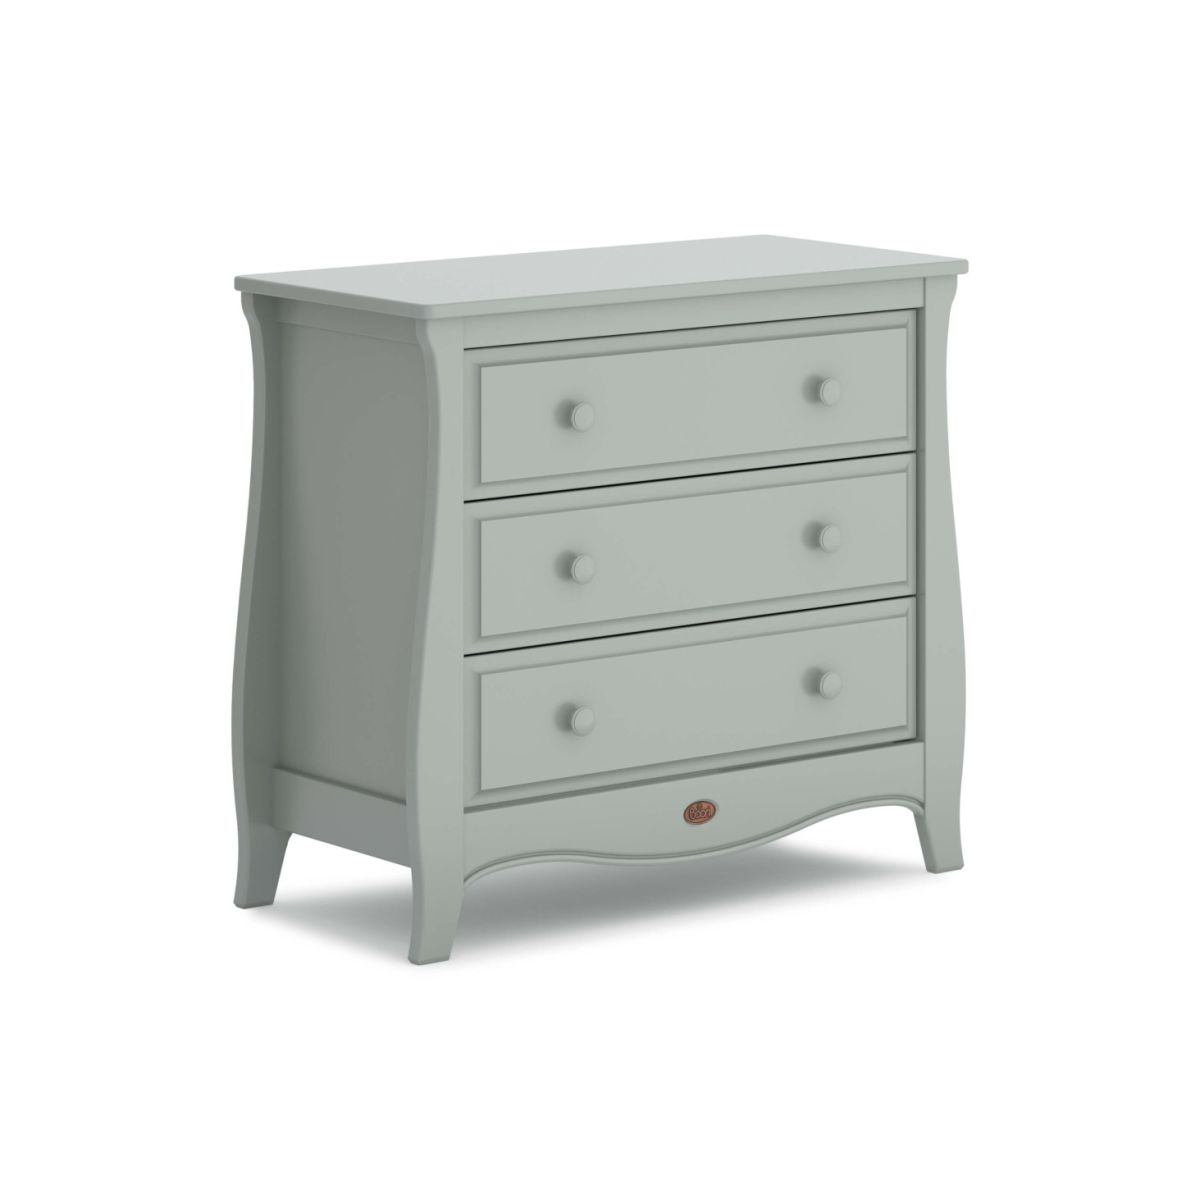 sleigh 3 Drawer Chest inc Smart Assembly (Pebble grey)